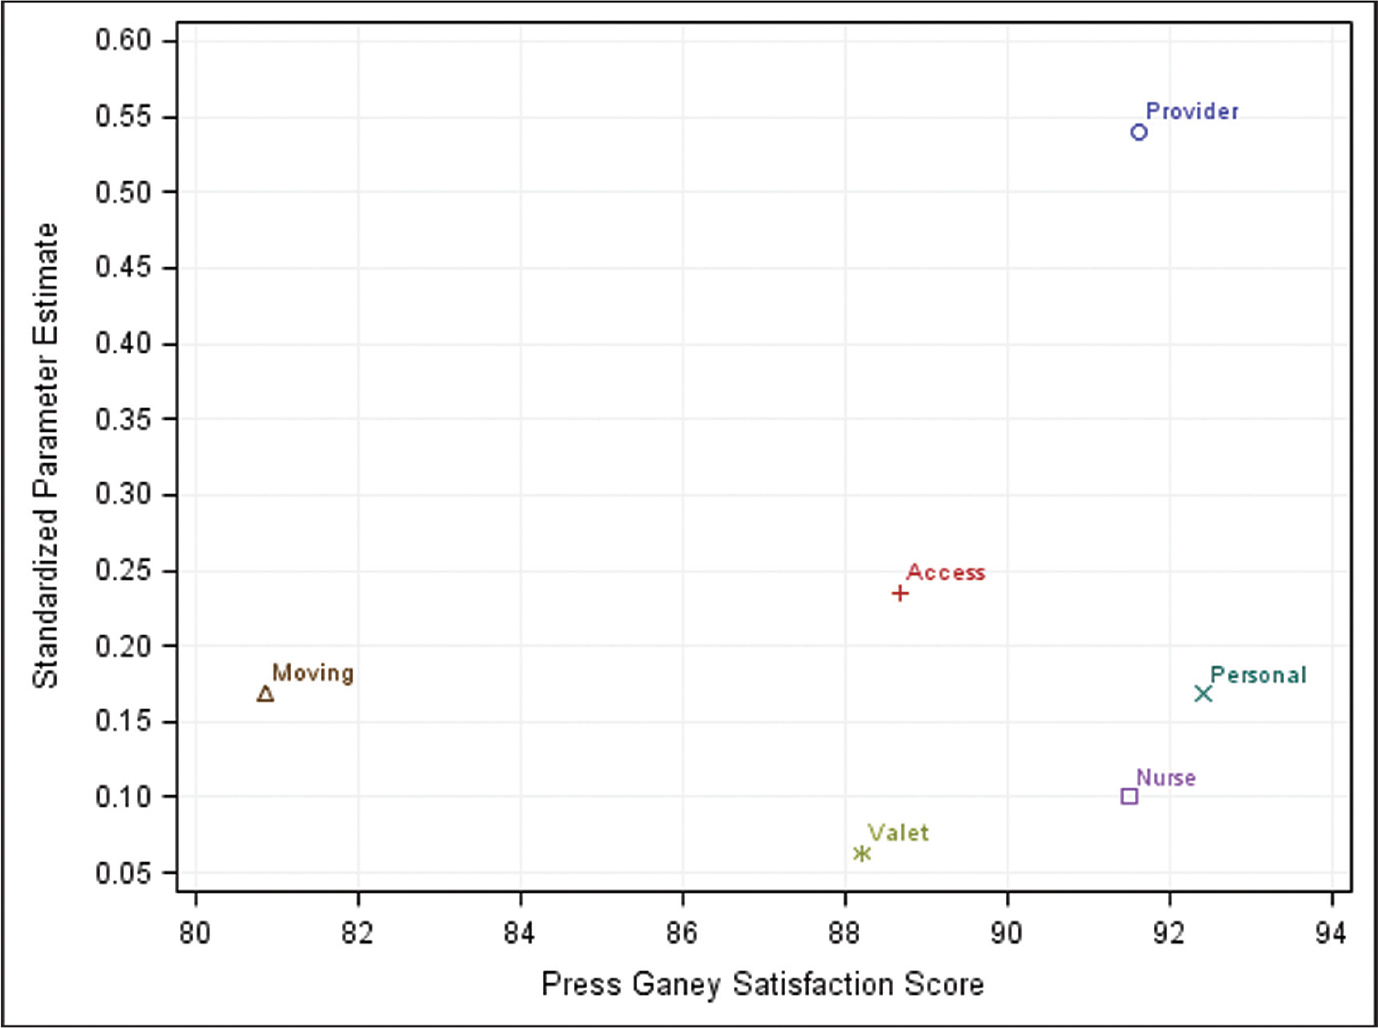 Plot of the standardized estimates against the Press Ganey satisfaction score for each of the 6 domains. The standardized parameter estimates indicated which of the 6 domains had a greater magnitude of relative importance in the expected relationship with Press Ganey total satisfaction; a larger standardized estimate indicated greater relative importance (N=4737 clinical encounters).